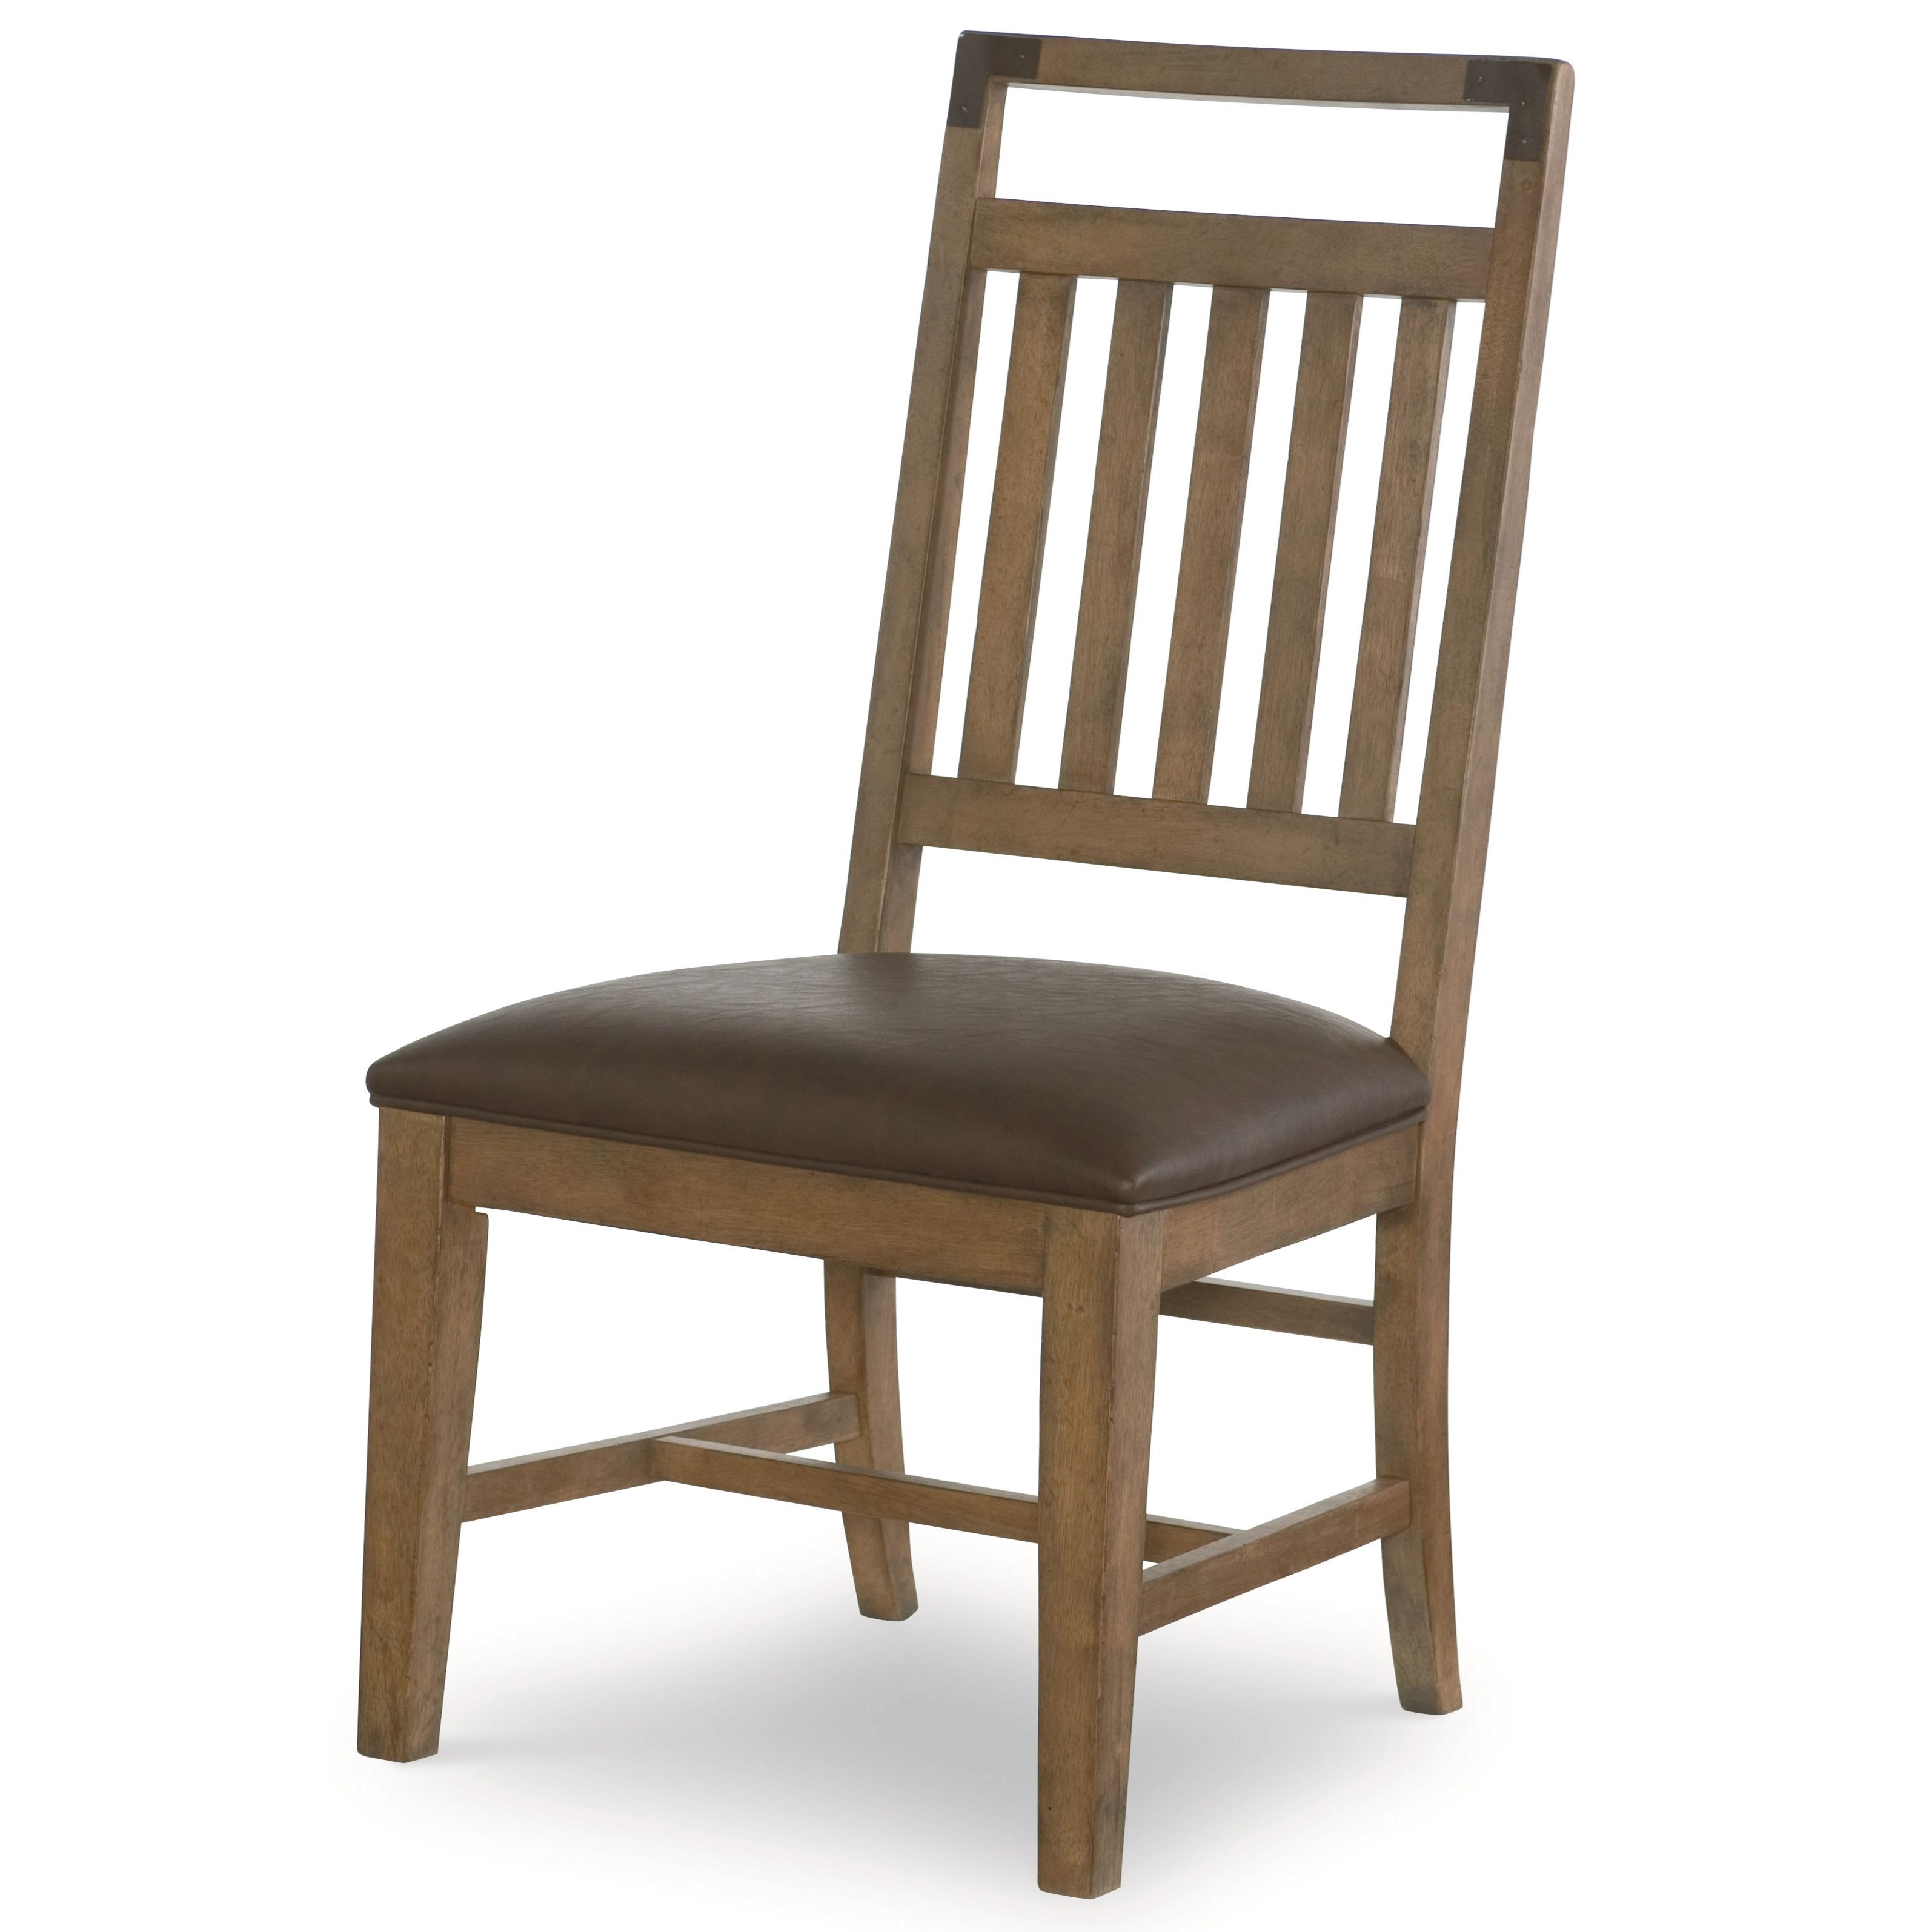 Legacy Classic Metalworks Splat Back Side Chair  - Item Number: 5610-240 KD